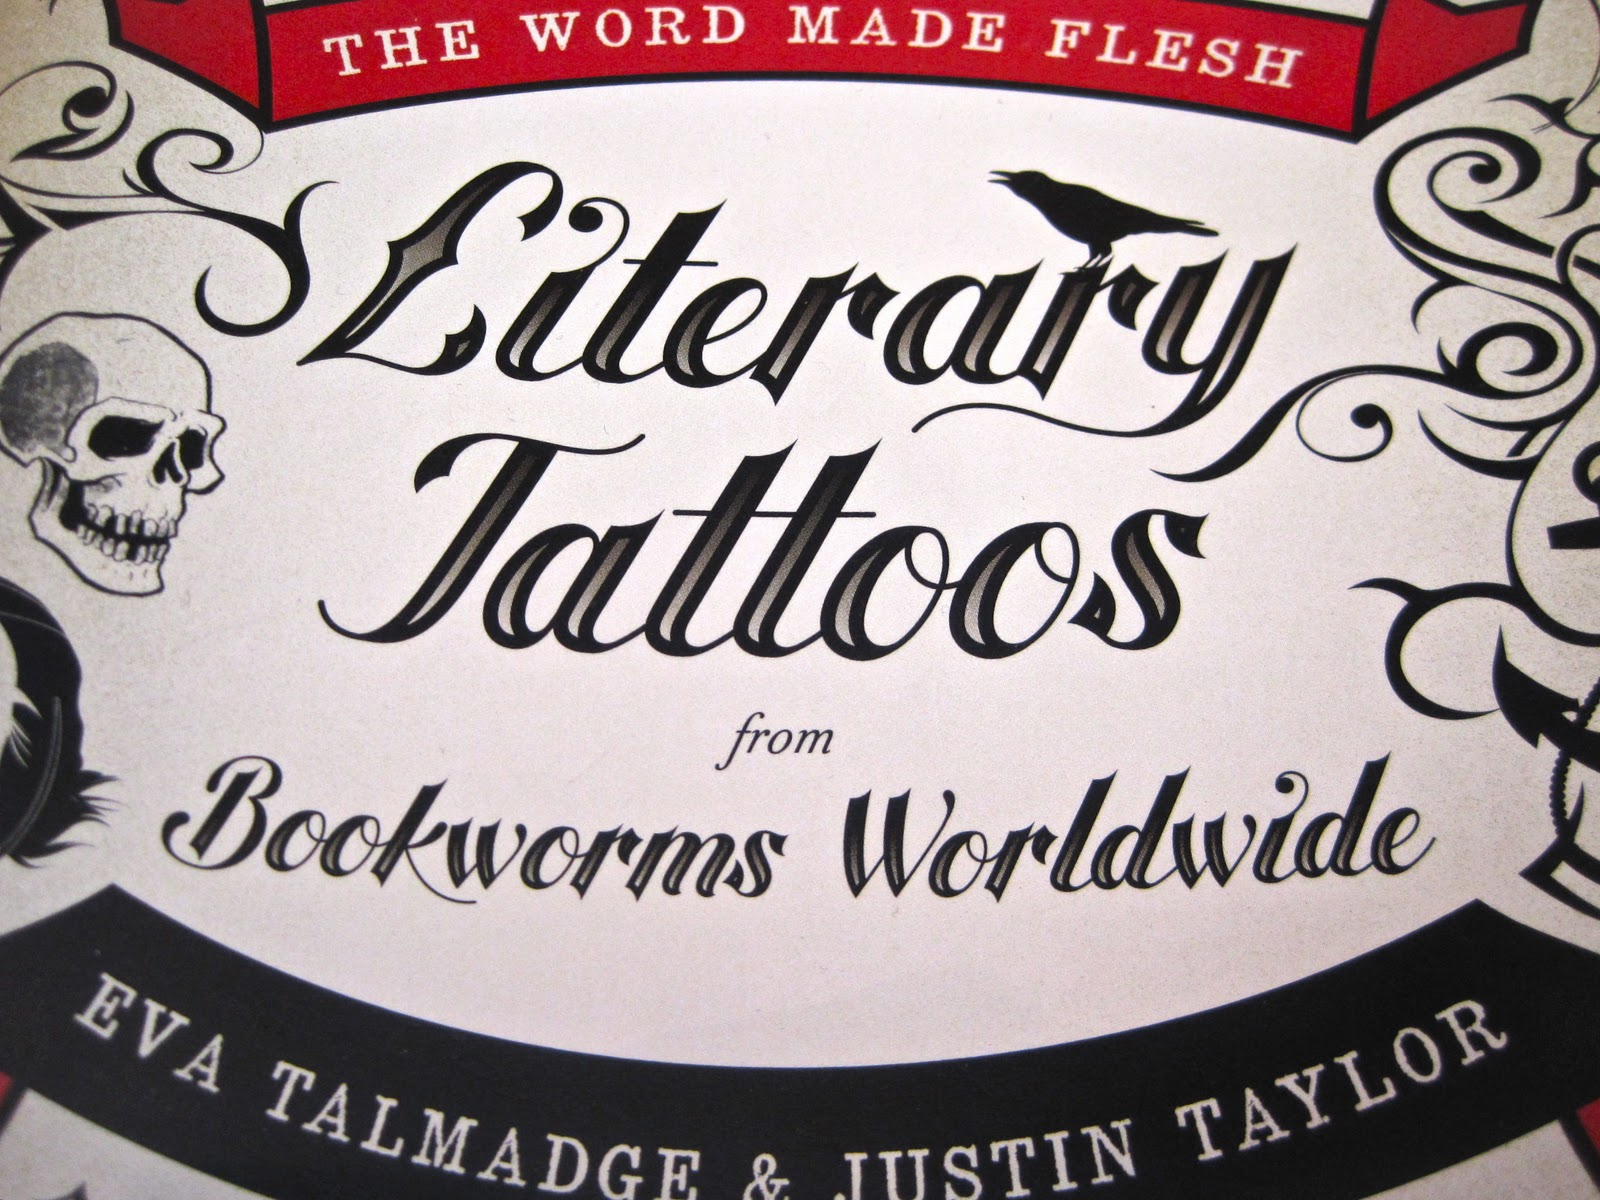 literary tattoos caught my